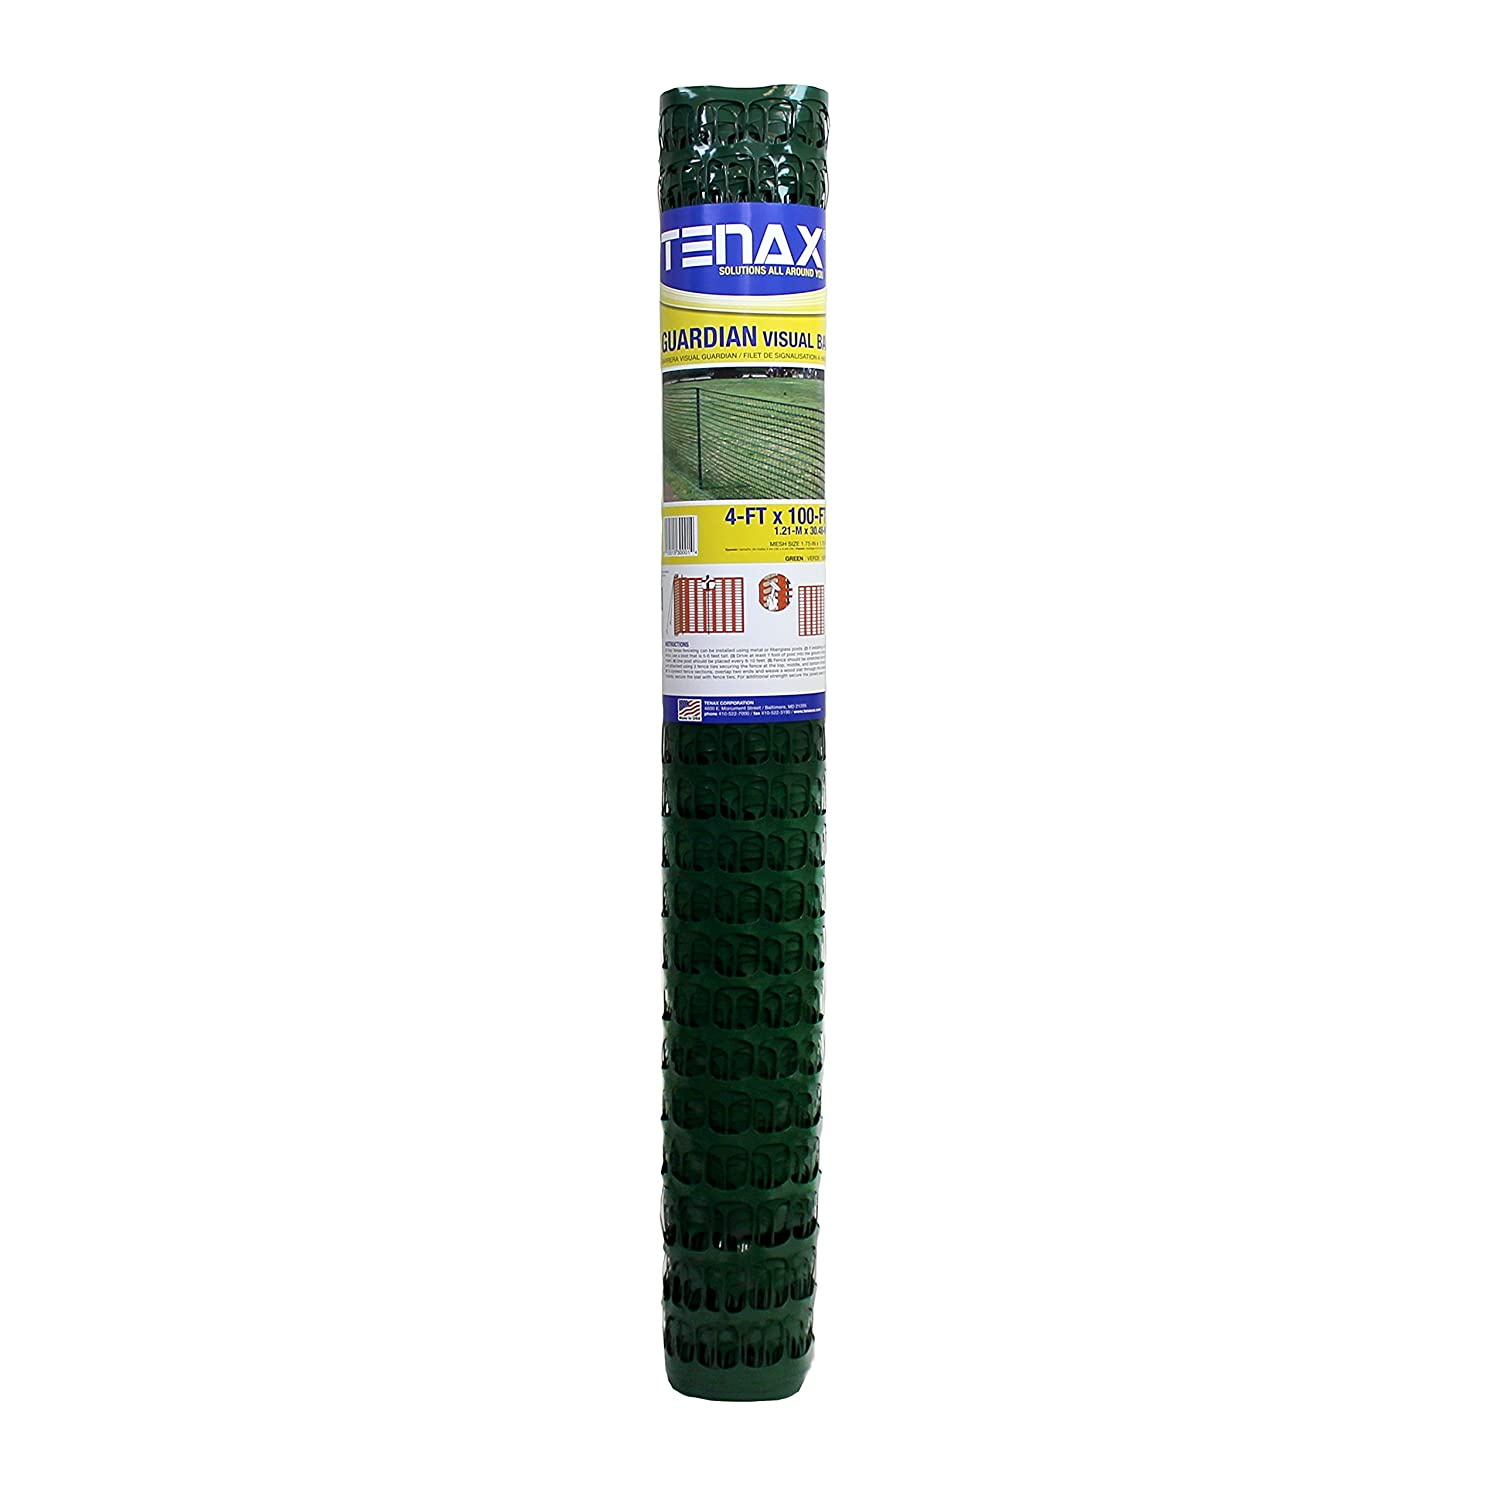 Tenax 5A030001 Guardian Warning Barrier, 4' x 100', Green